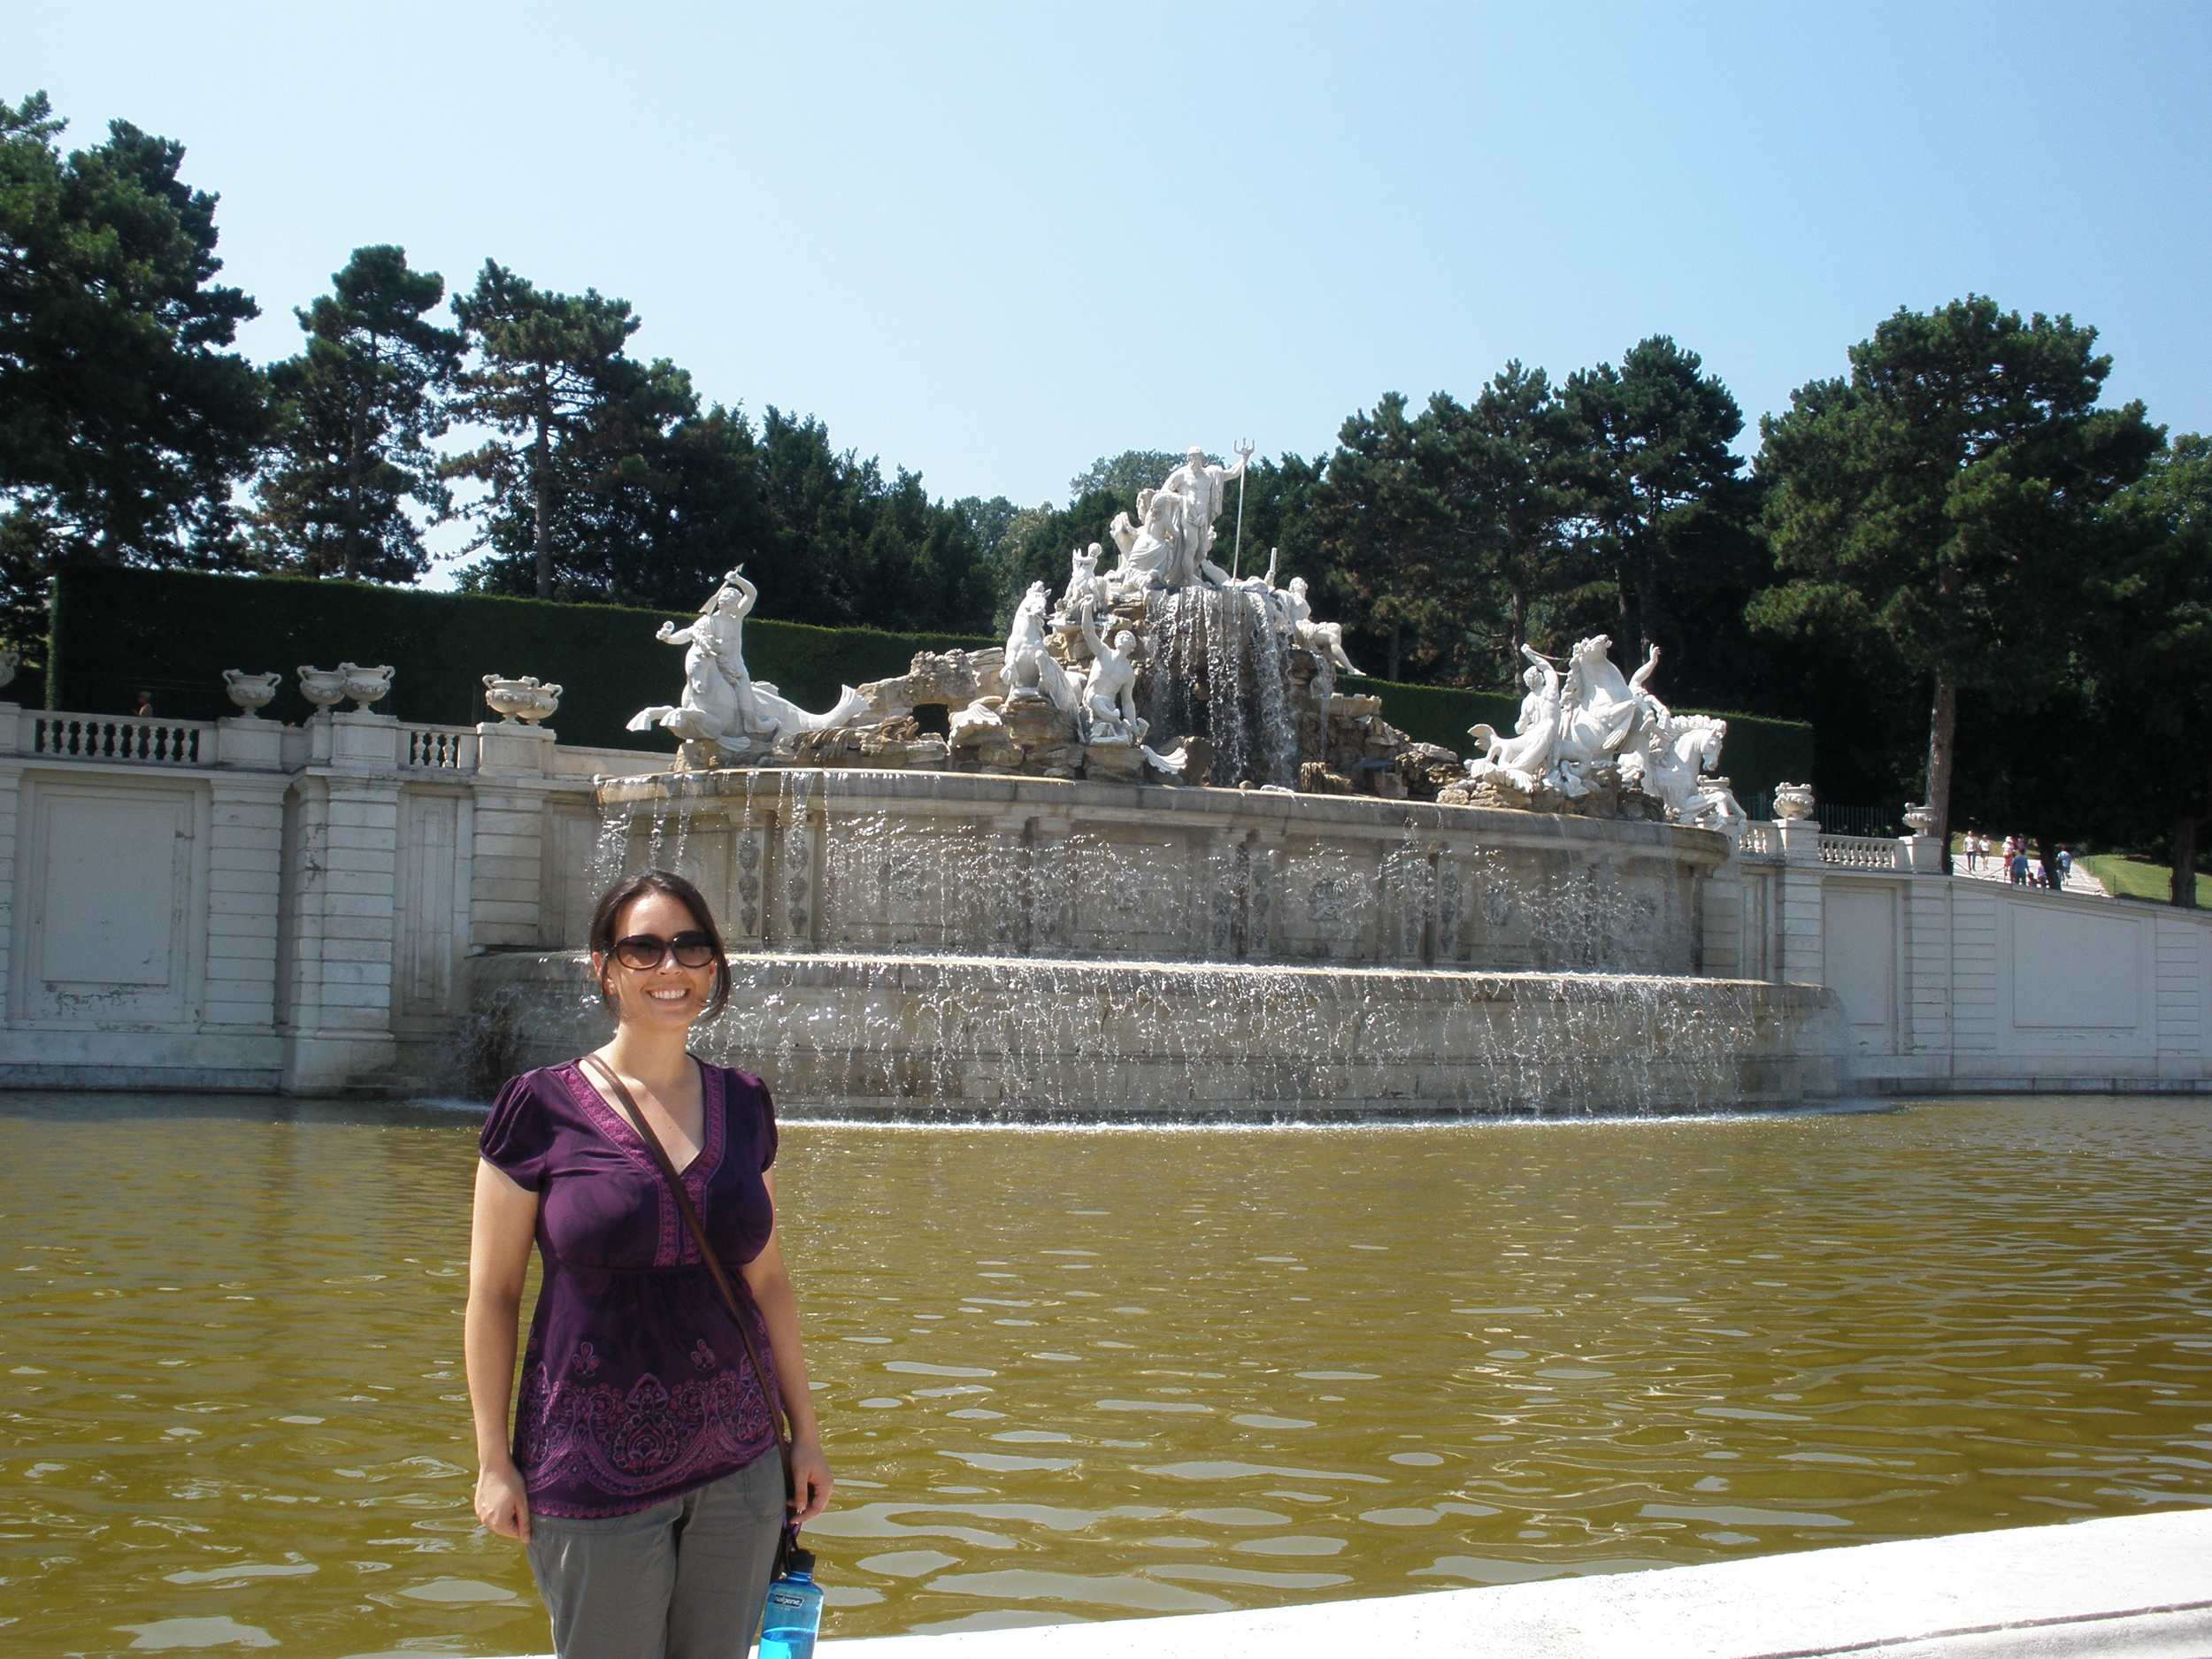 Debi at Schonbrunn Palace